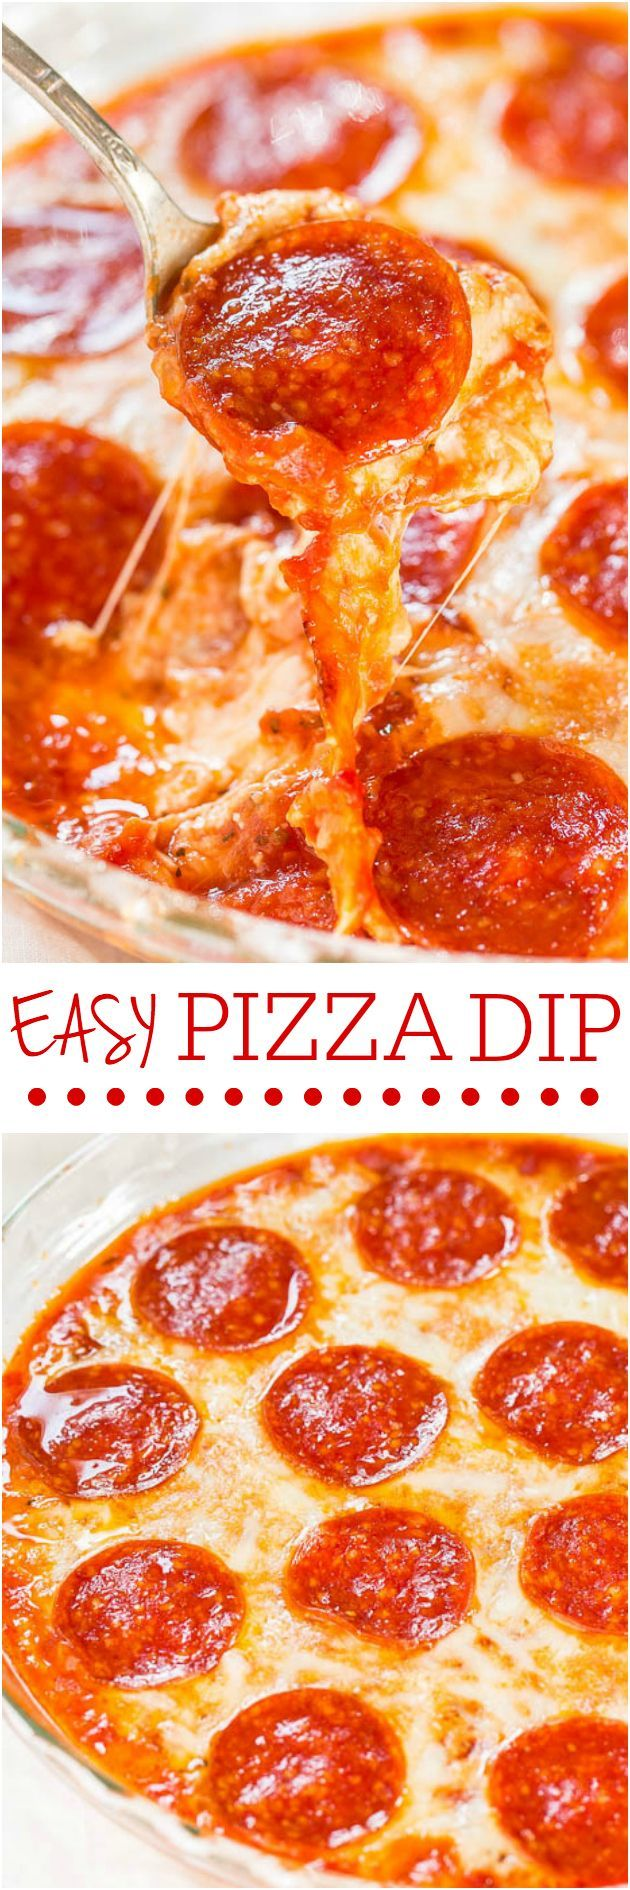 17 Best ideas about Pepperoni Pizza Dip on Pinterest ...